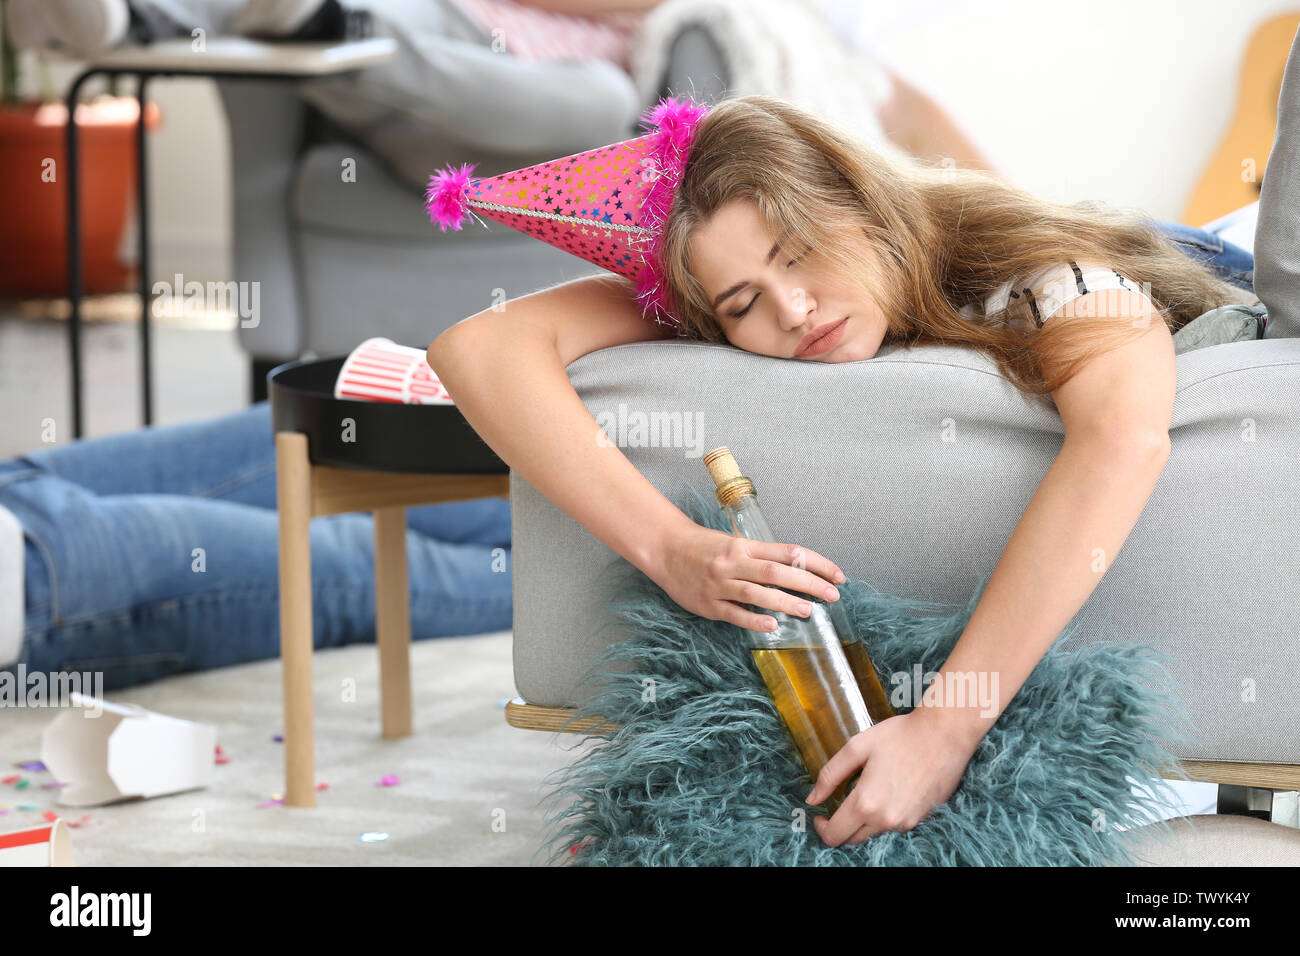 Young woman sleeping after party at home - Stock Image